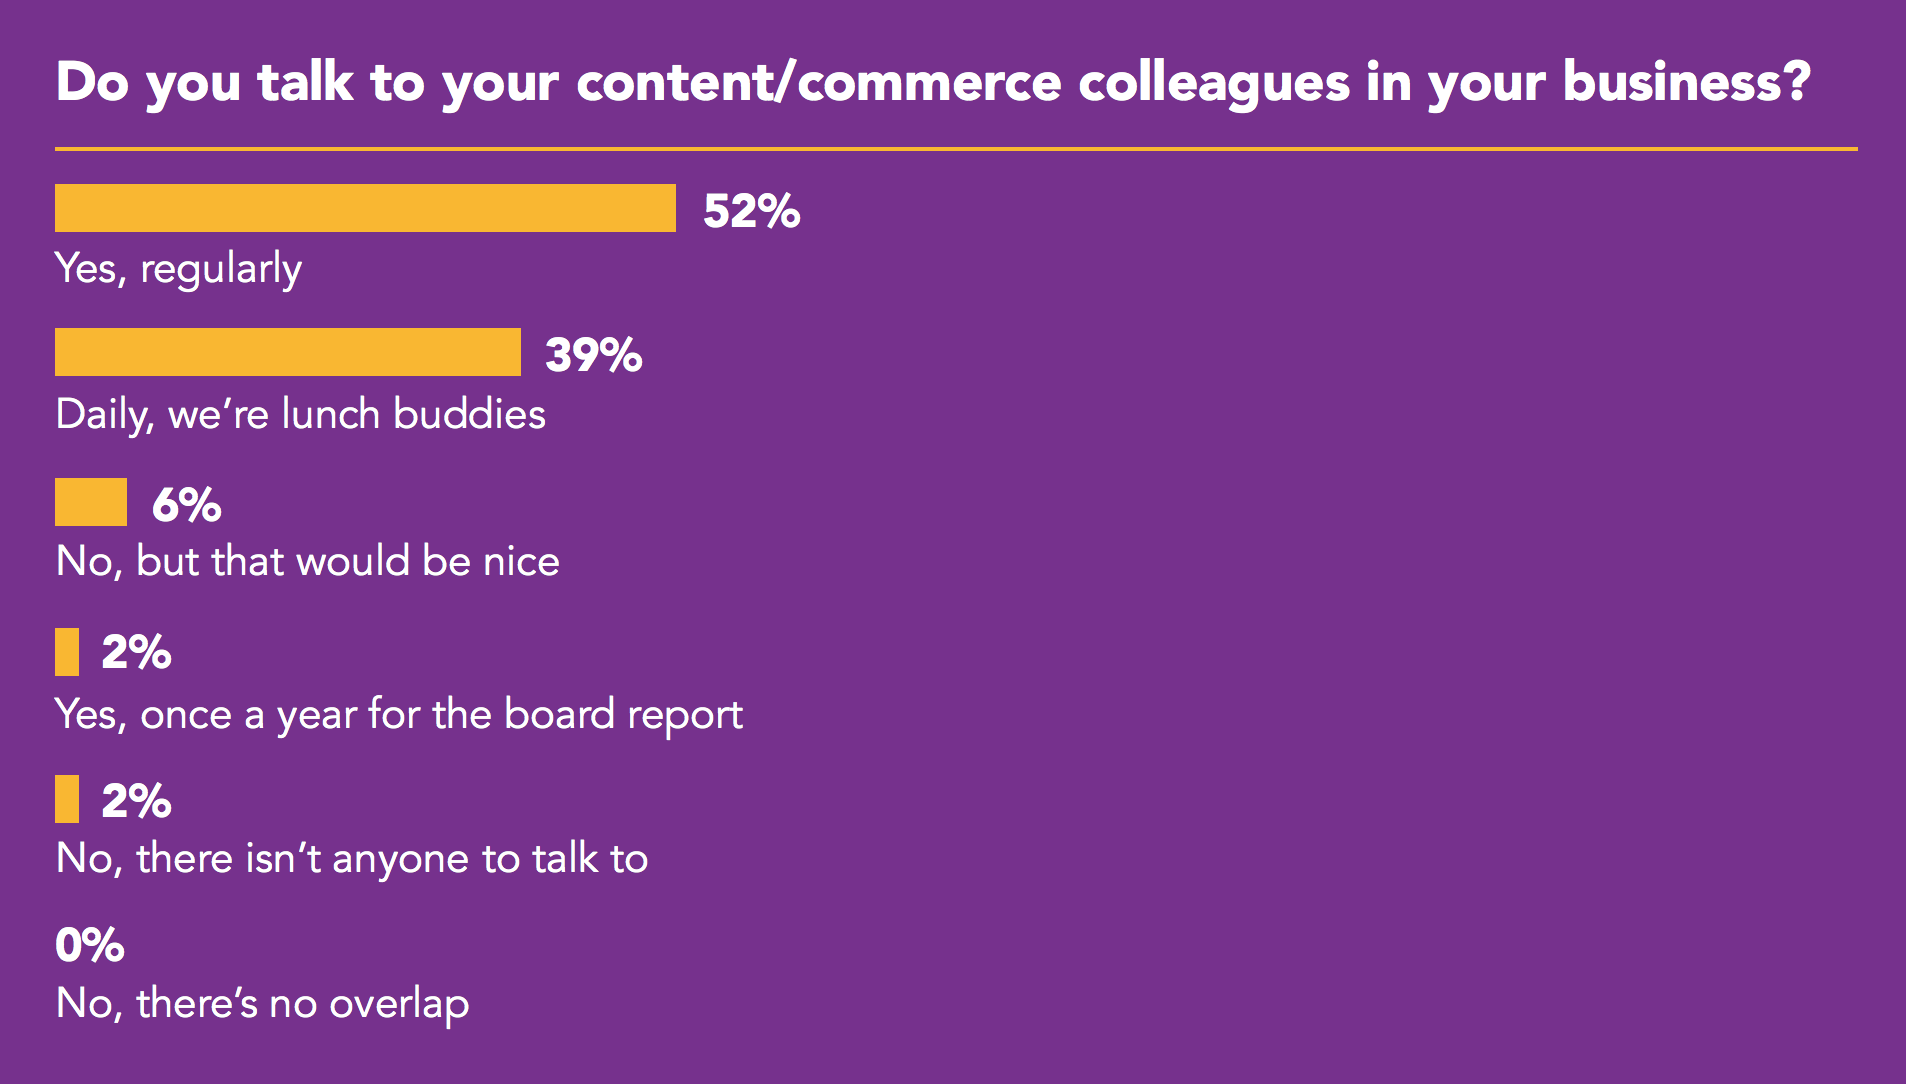 Graph showing: Do you talk to your content/commerce colleagues in your business? yes 52%, daily 39%, no 6%, once a year 2%, nobody to talk to 2%, no overlap 0%